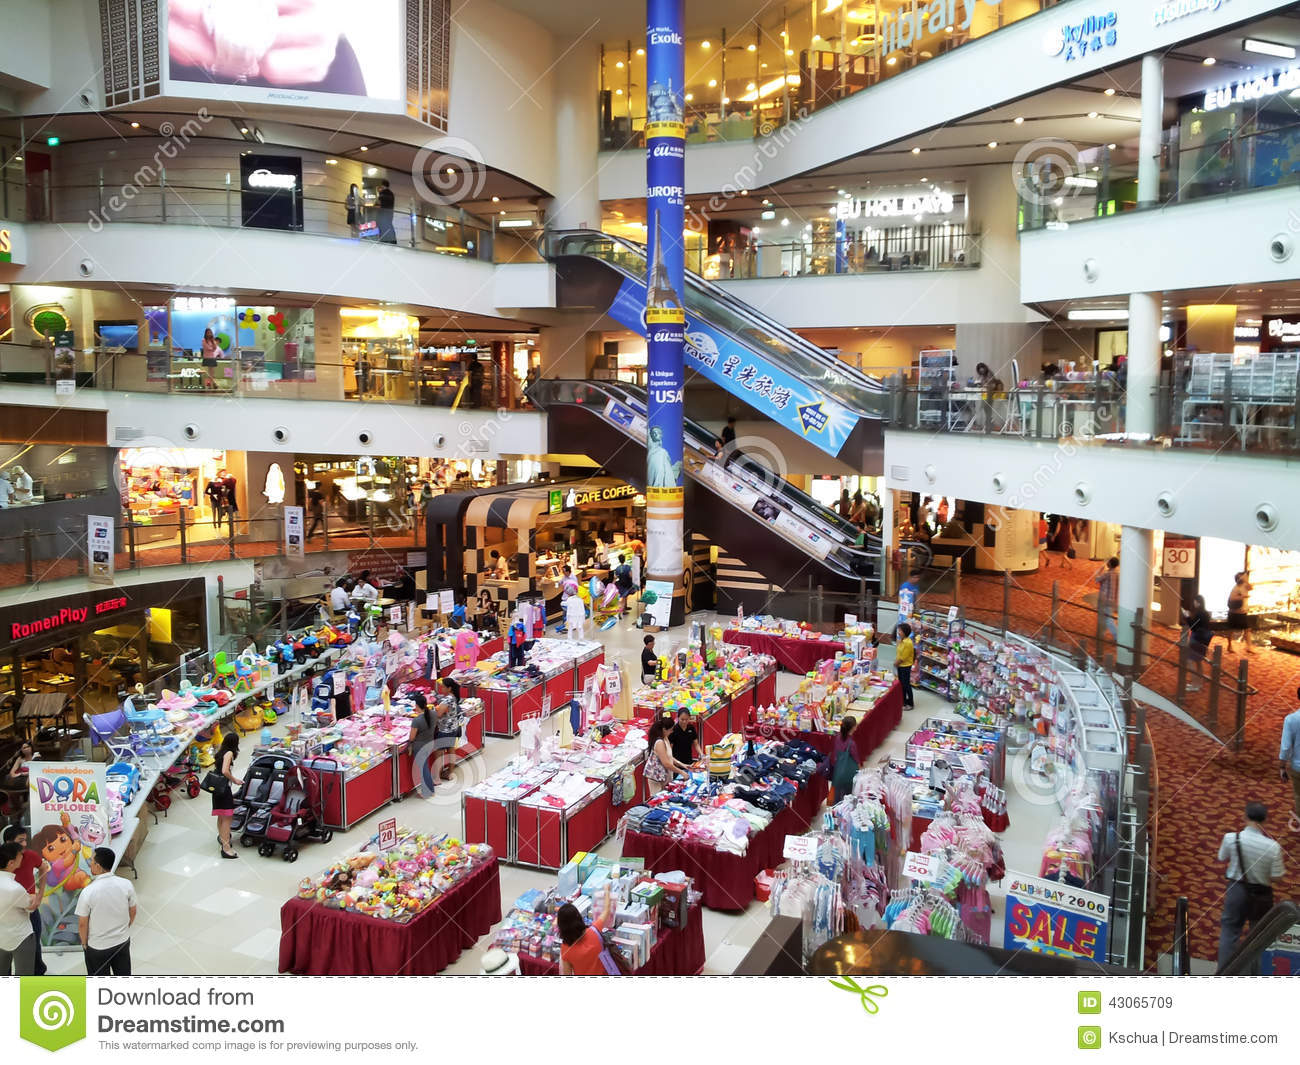 Great Singapore Sale – Discount Shopping Stores & Dates Orchard Road remains as the main destination for everyone, as it is the most well known shopping destination in Singapore. In particular, ION Orchard is always flocked by thousands of shoppers each day during the event.